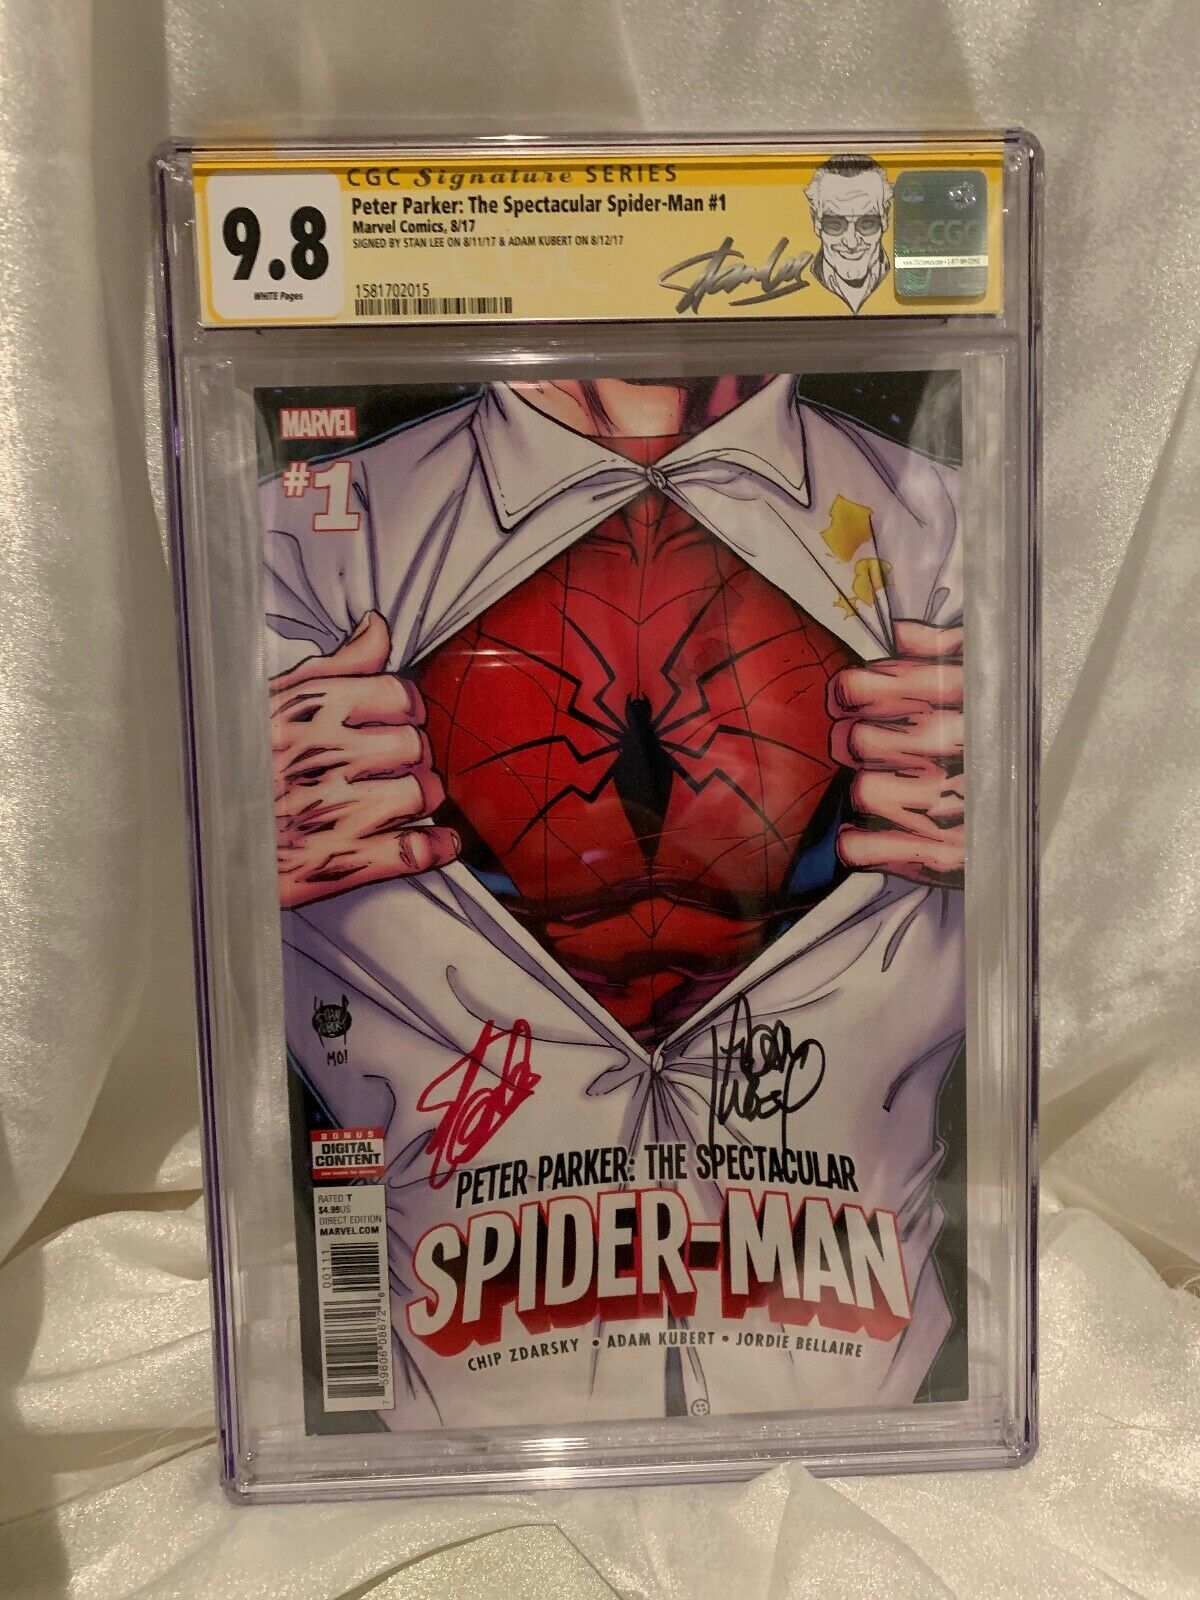 CGC 98 SIGNED STAN LEE SPECTACULAR SPIDERMAN 1